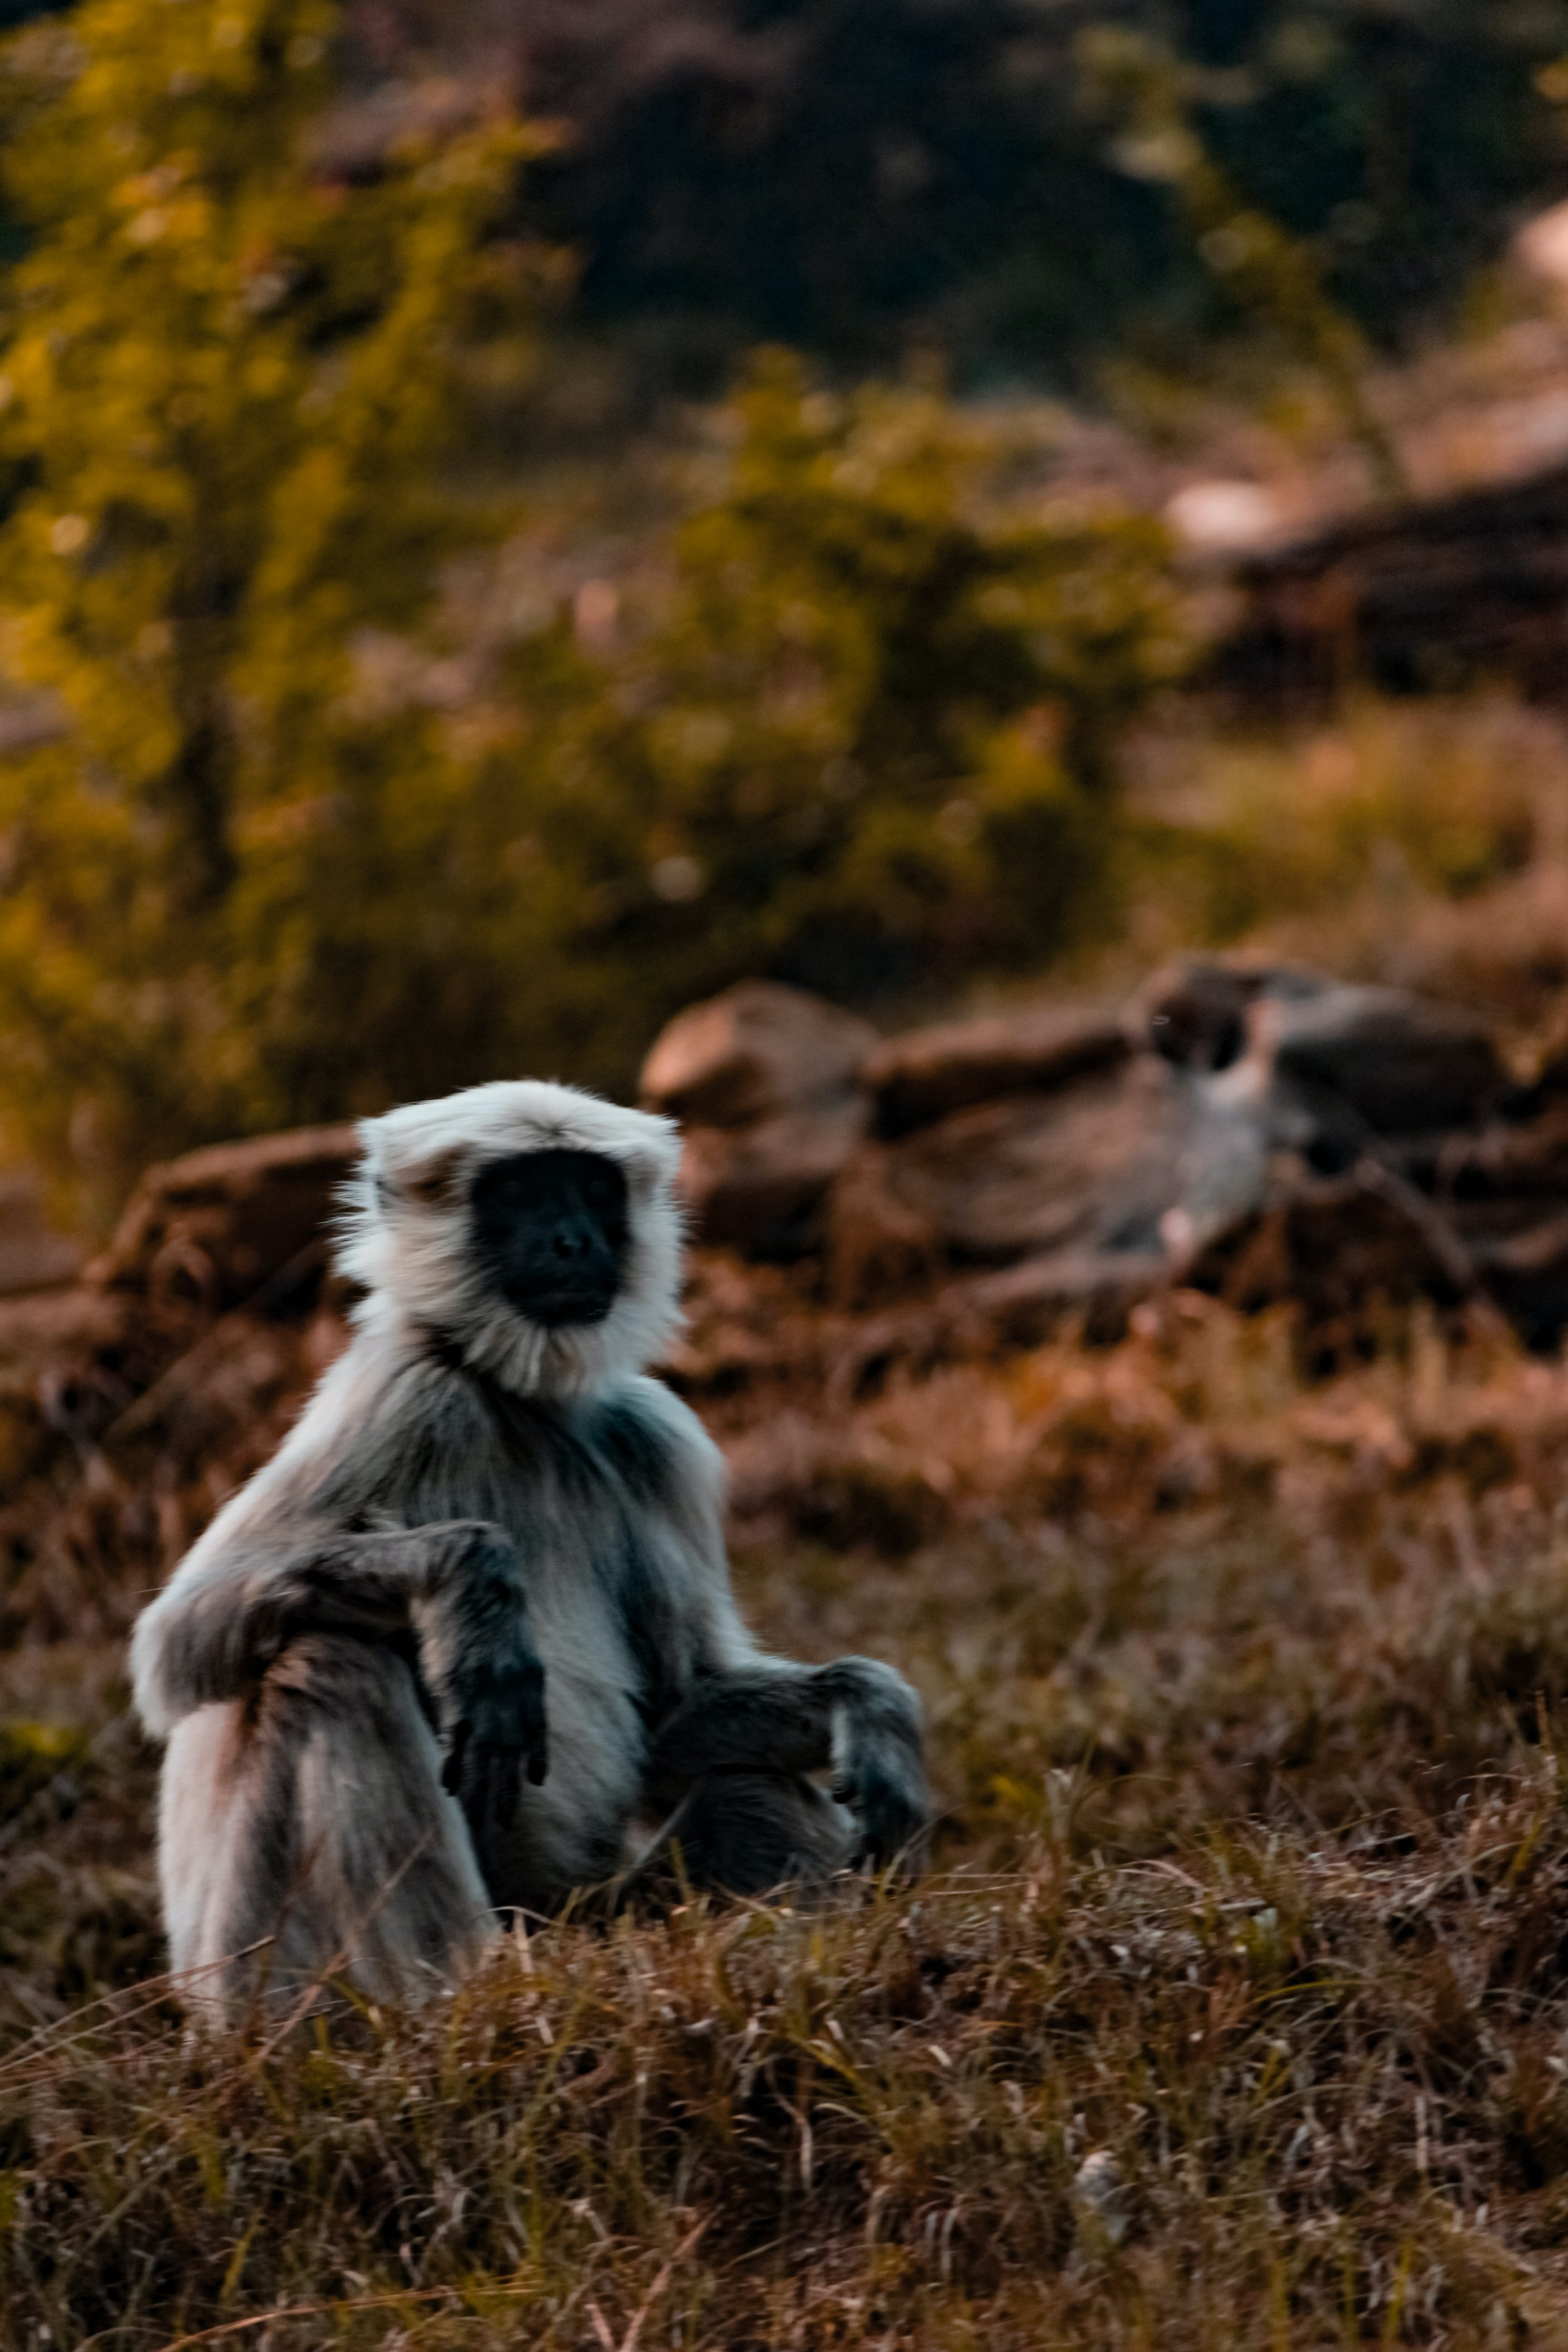 Monkey Sitting on Grass Field